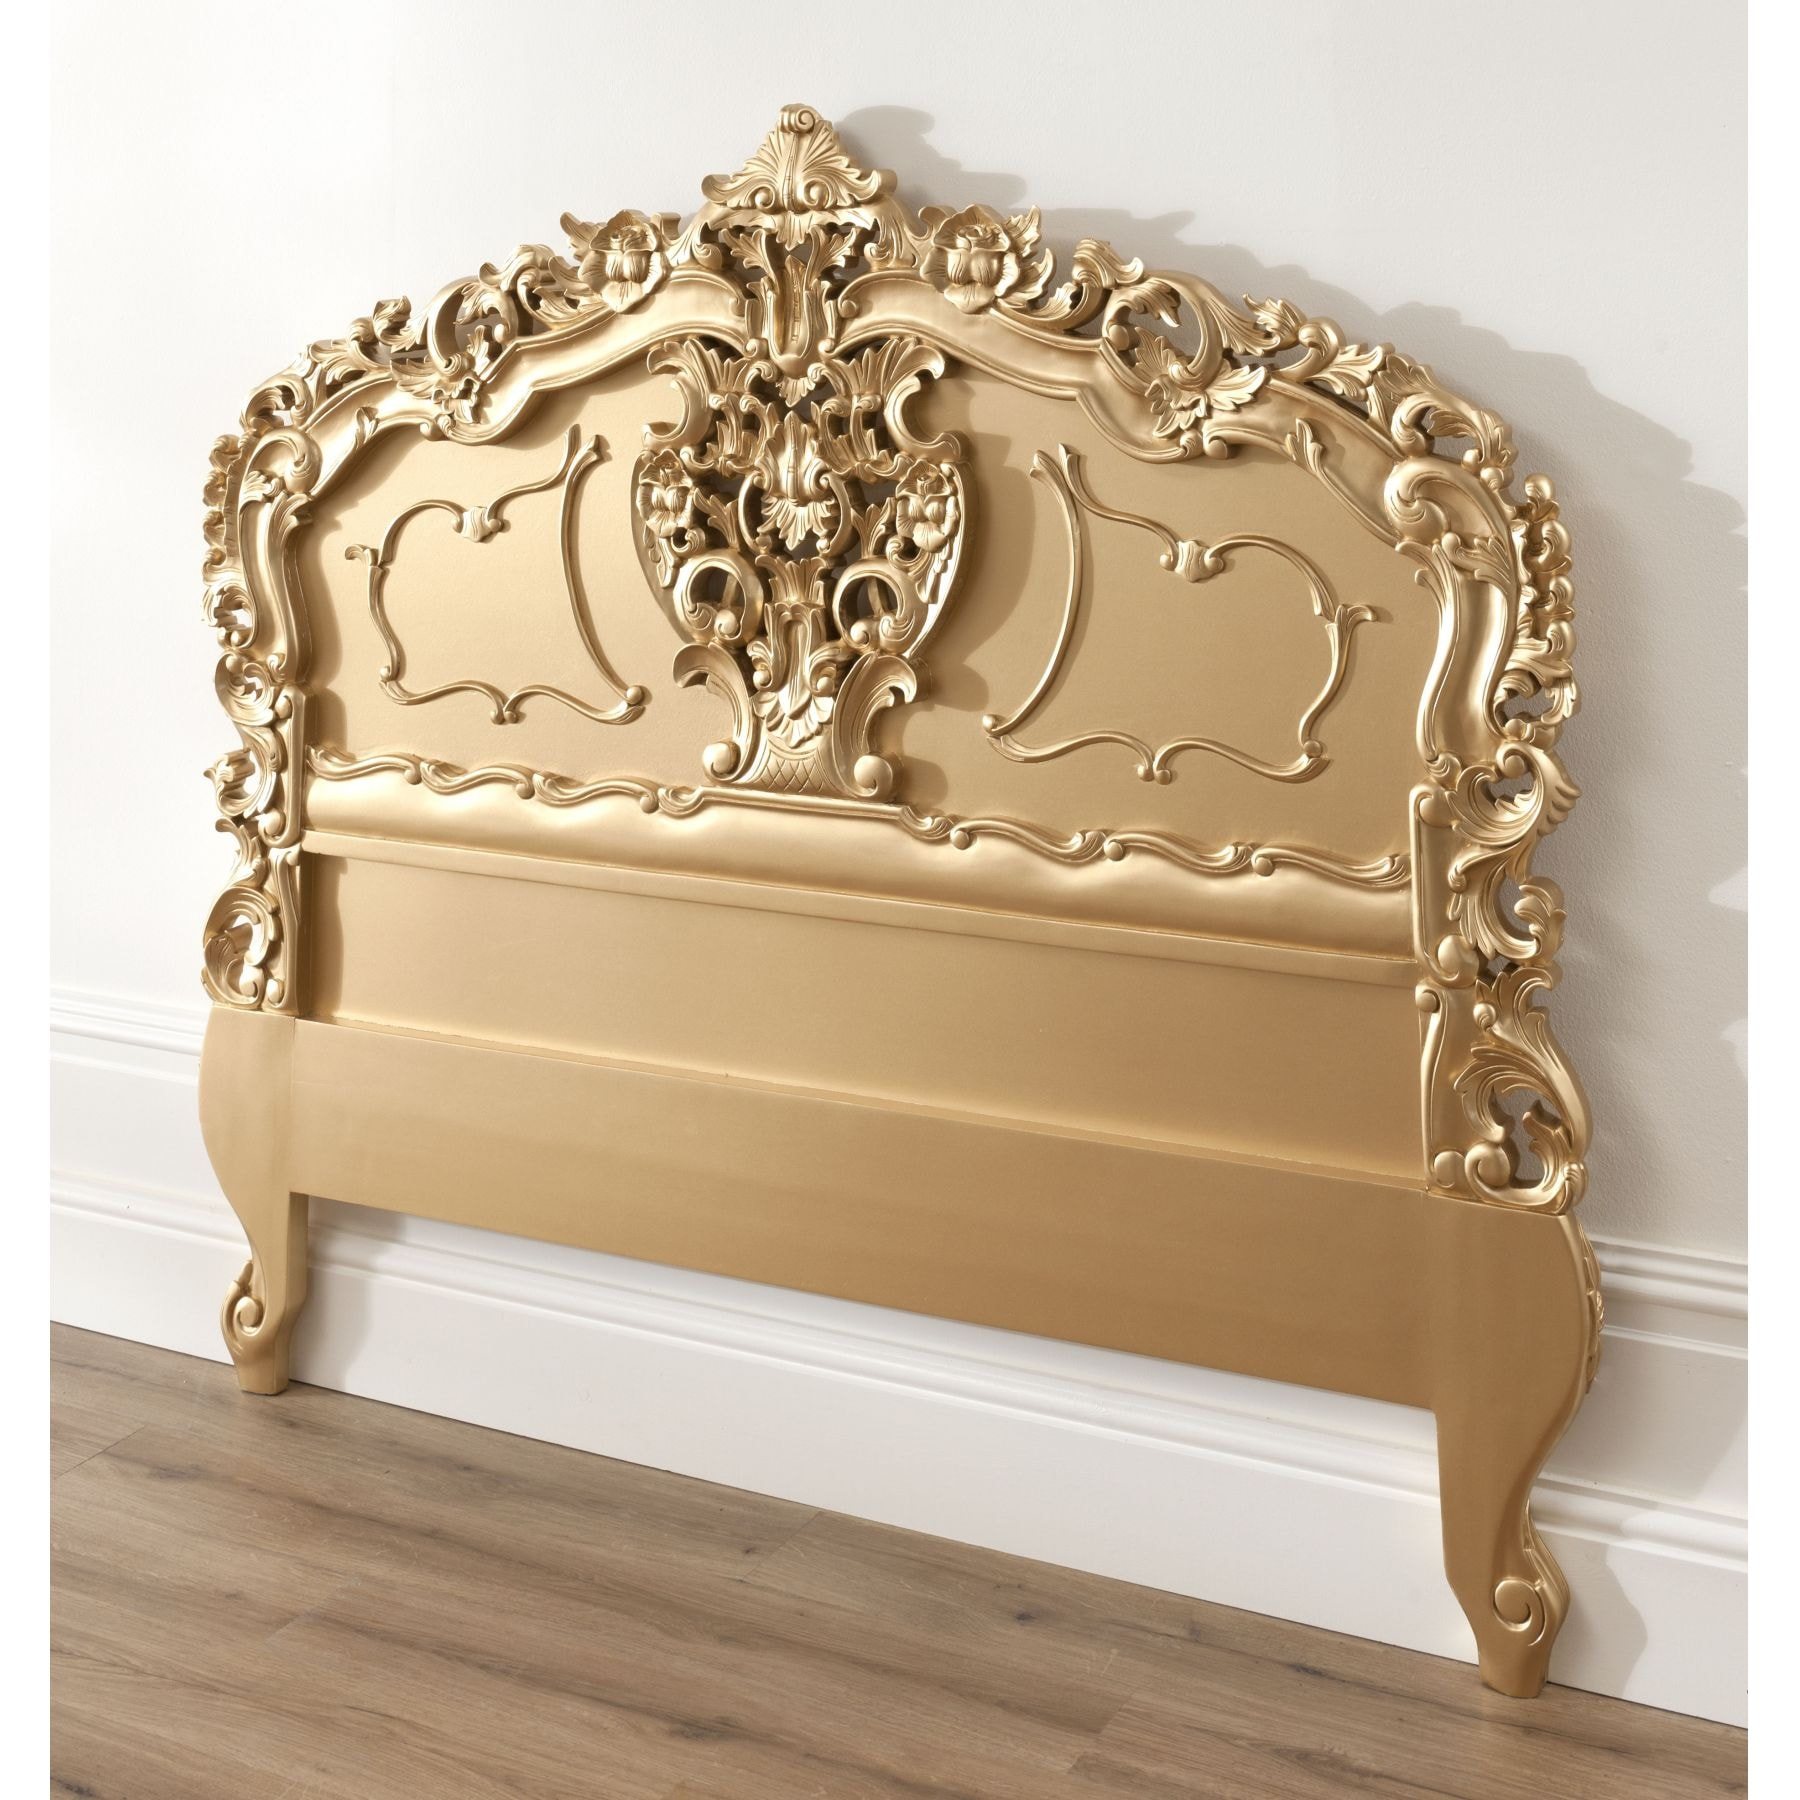 Gold rococo antique french headboard working exceptional for French rococo style